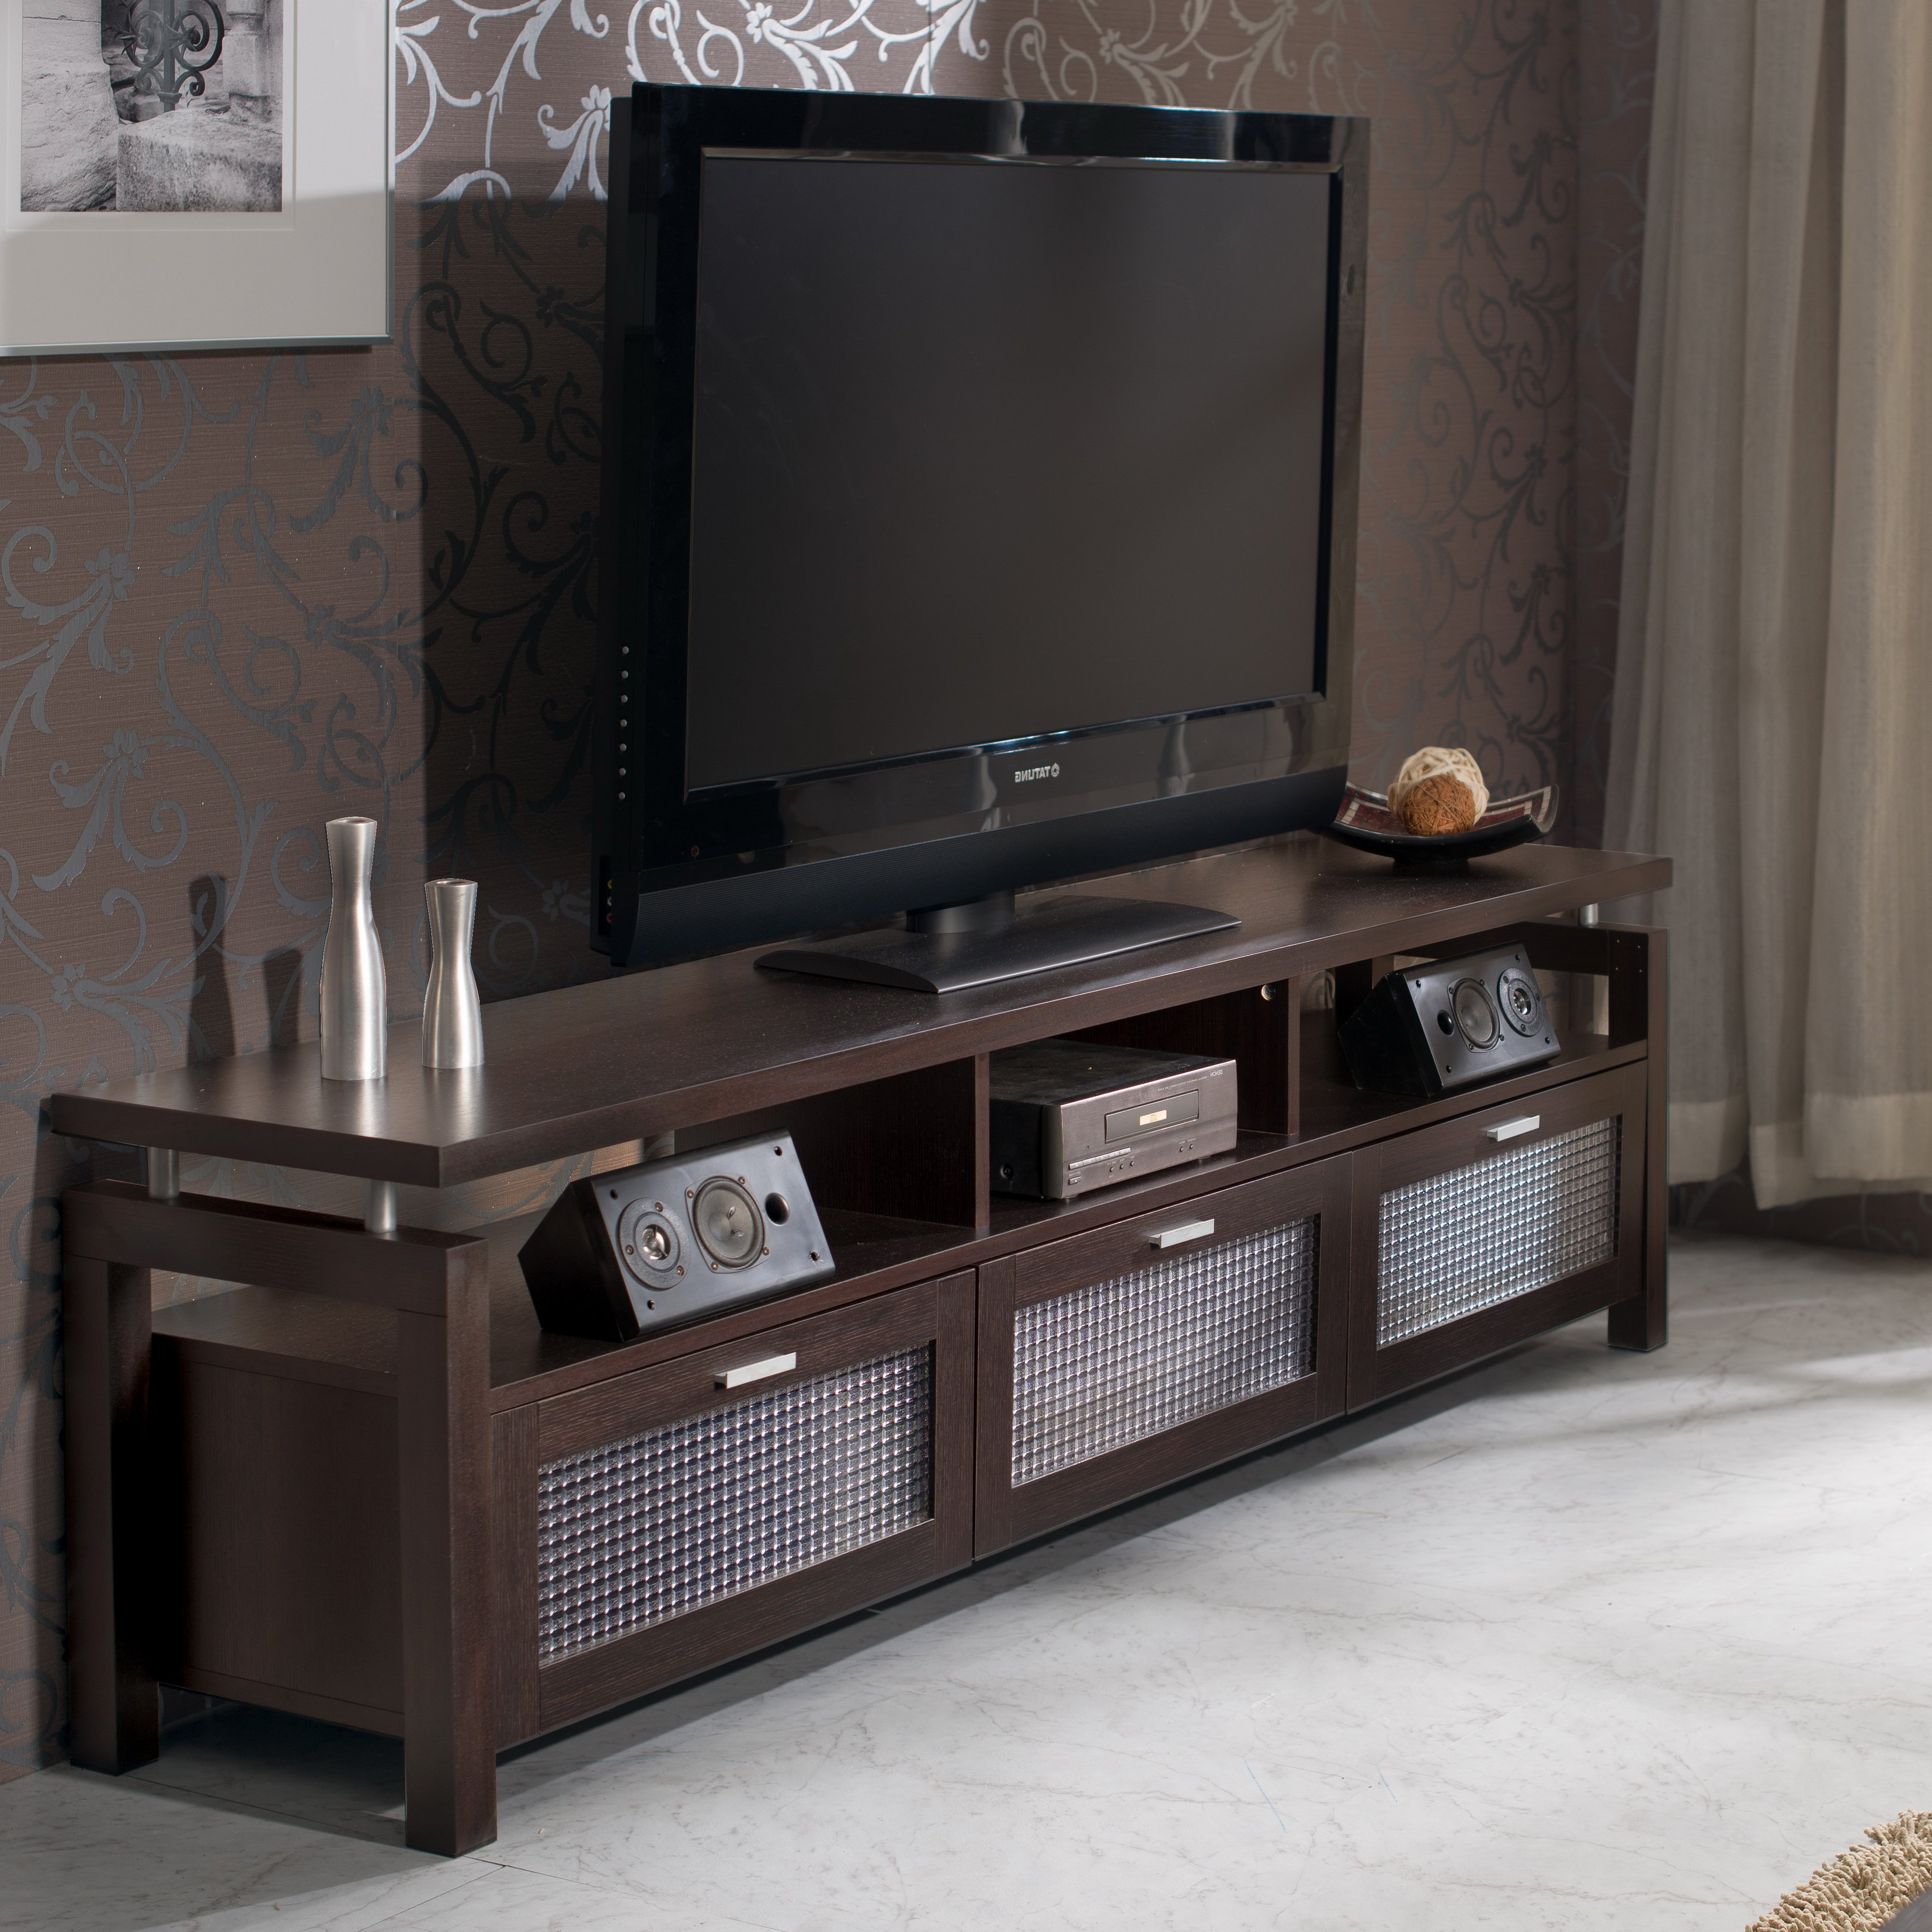 Wayfair Intended For Over Tv Shelves (View 20 of 20)